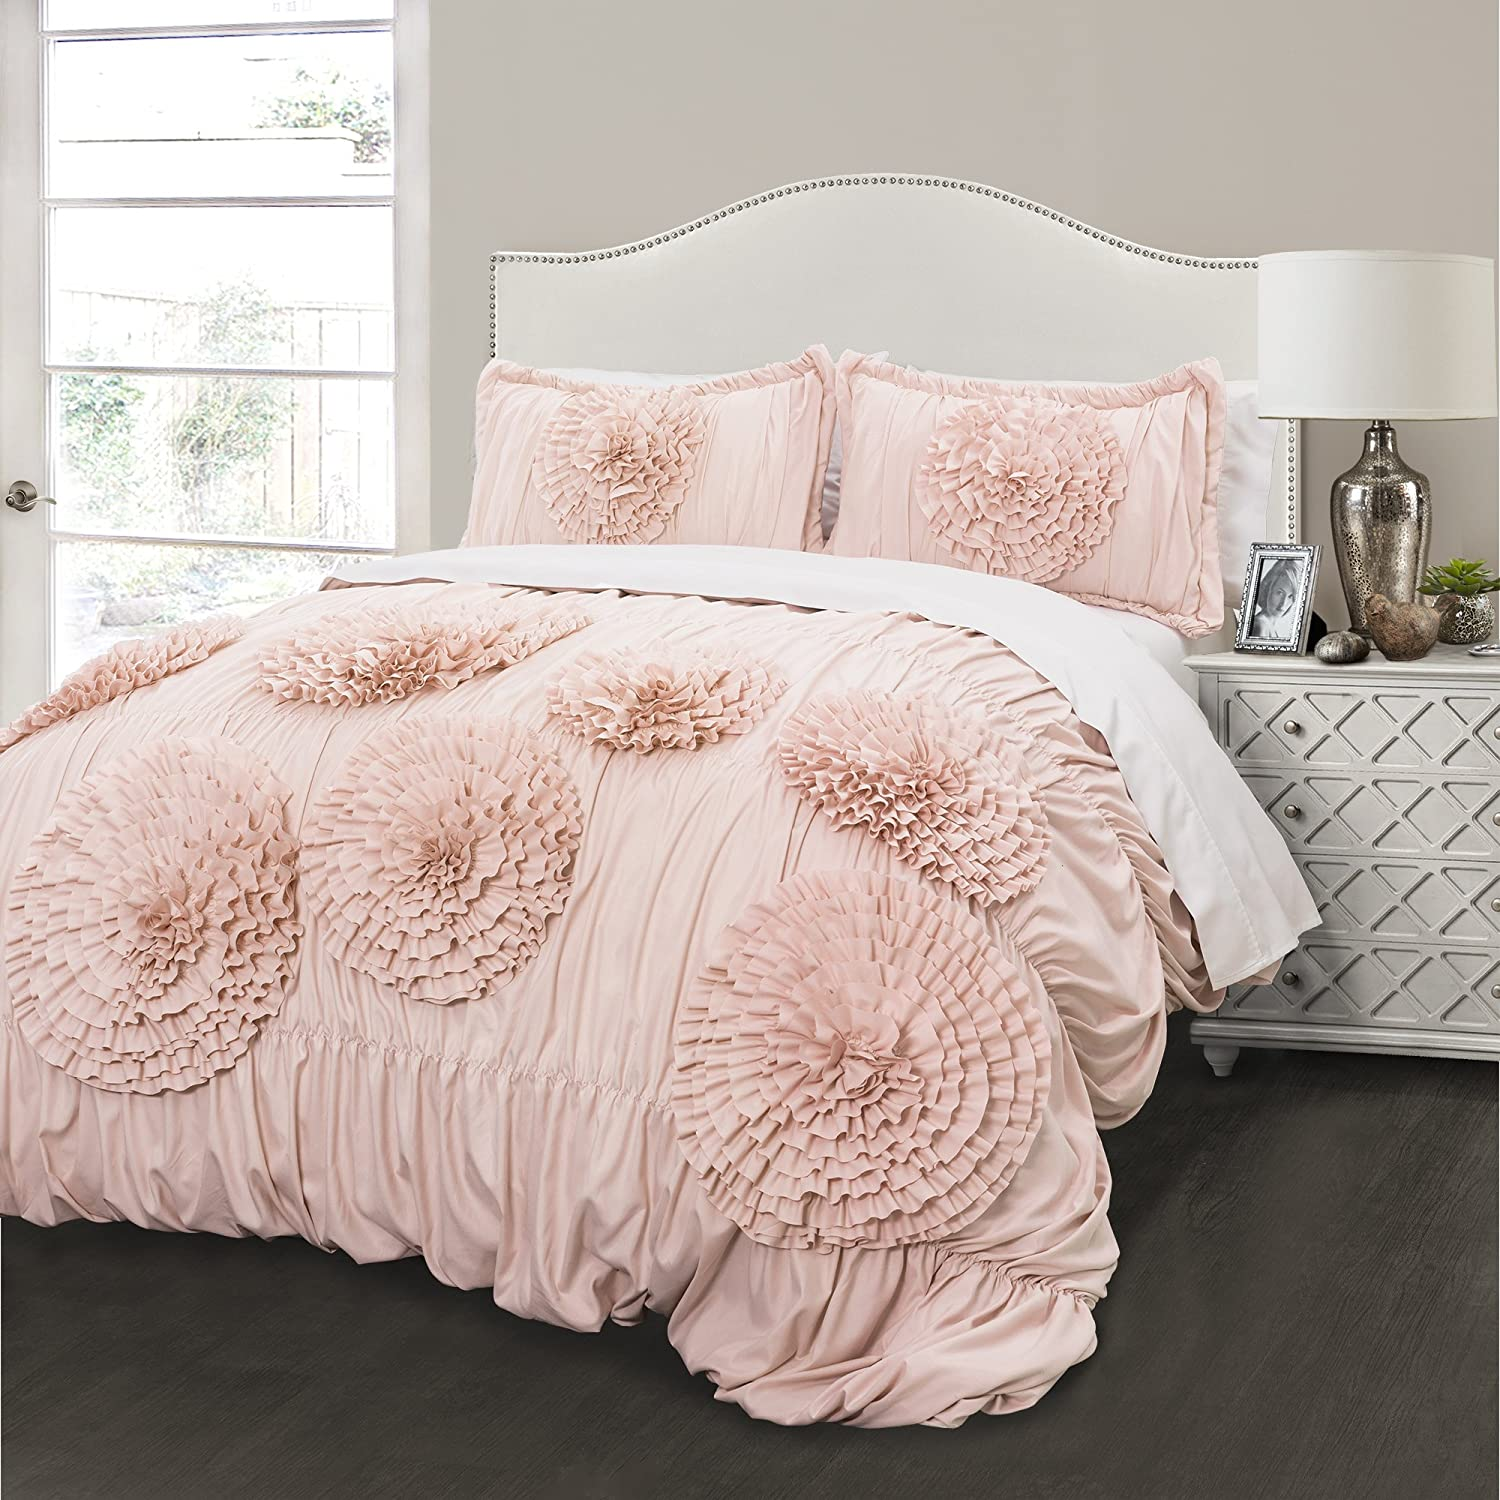 goose amazon rose dp down home comforter size pink filling bed cotton dusty nature com quilt kitchen shell color orangic feather power and warmth queen